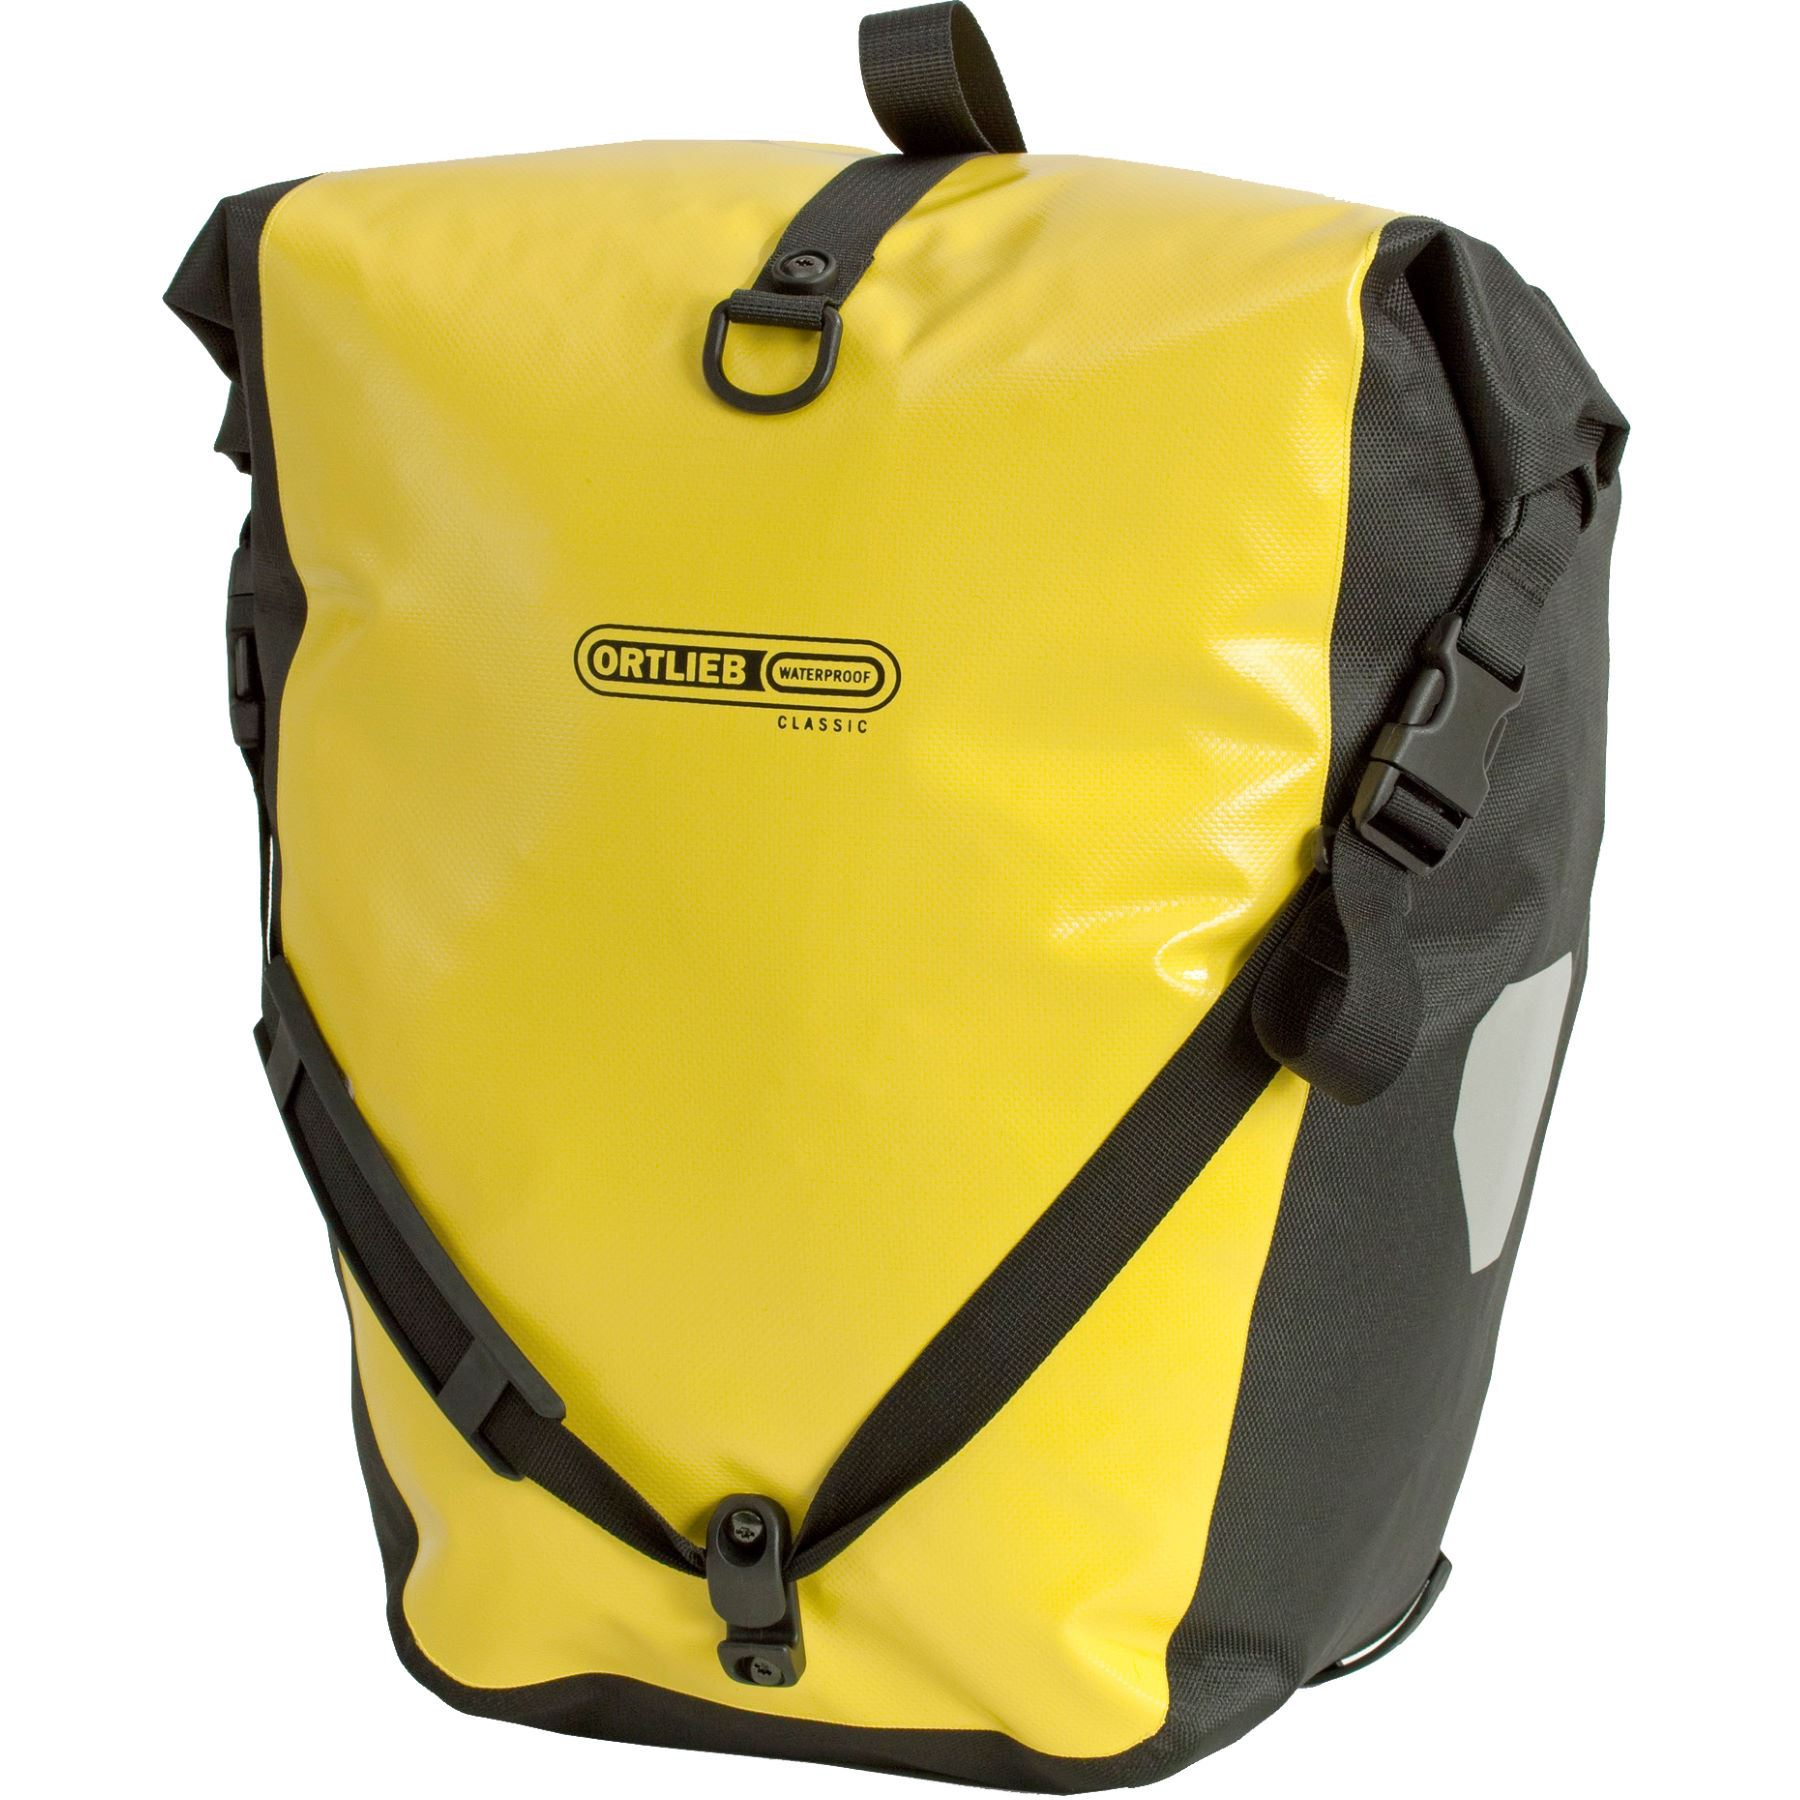 Sideveske Ortlieb Back Roller Classic - 20 litres ei